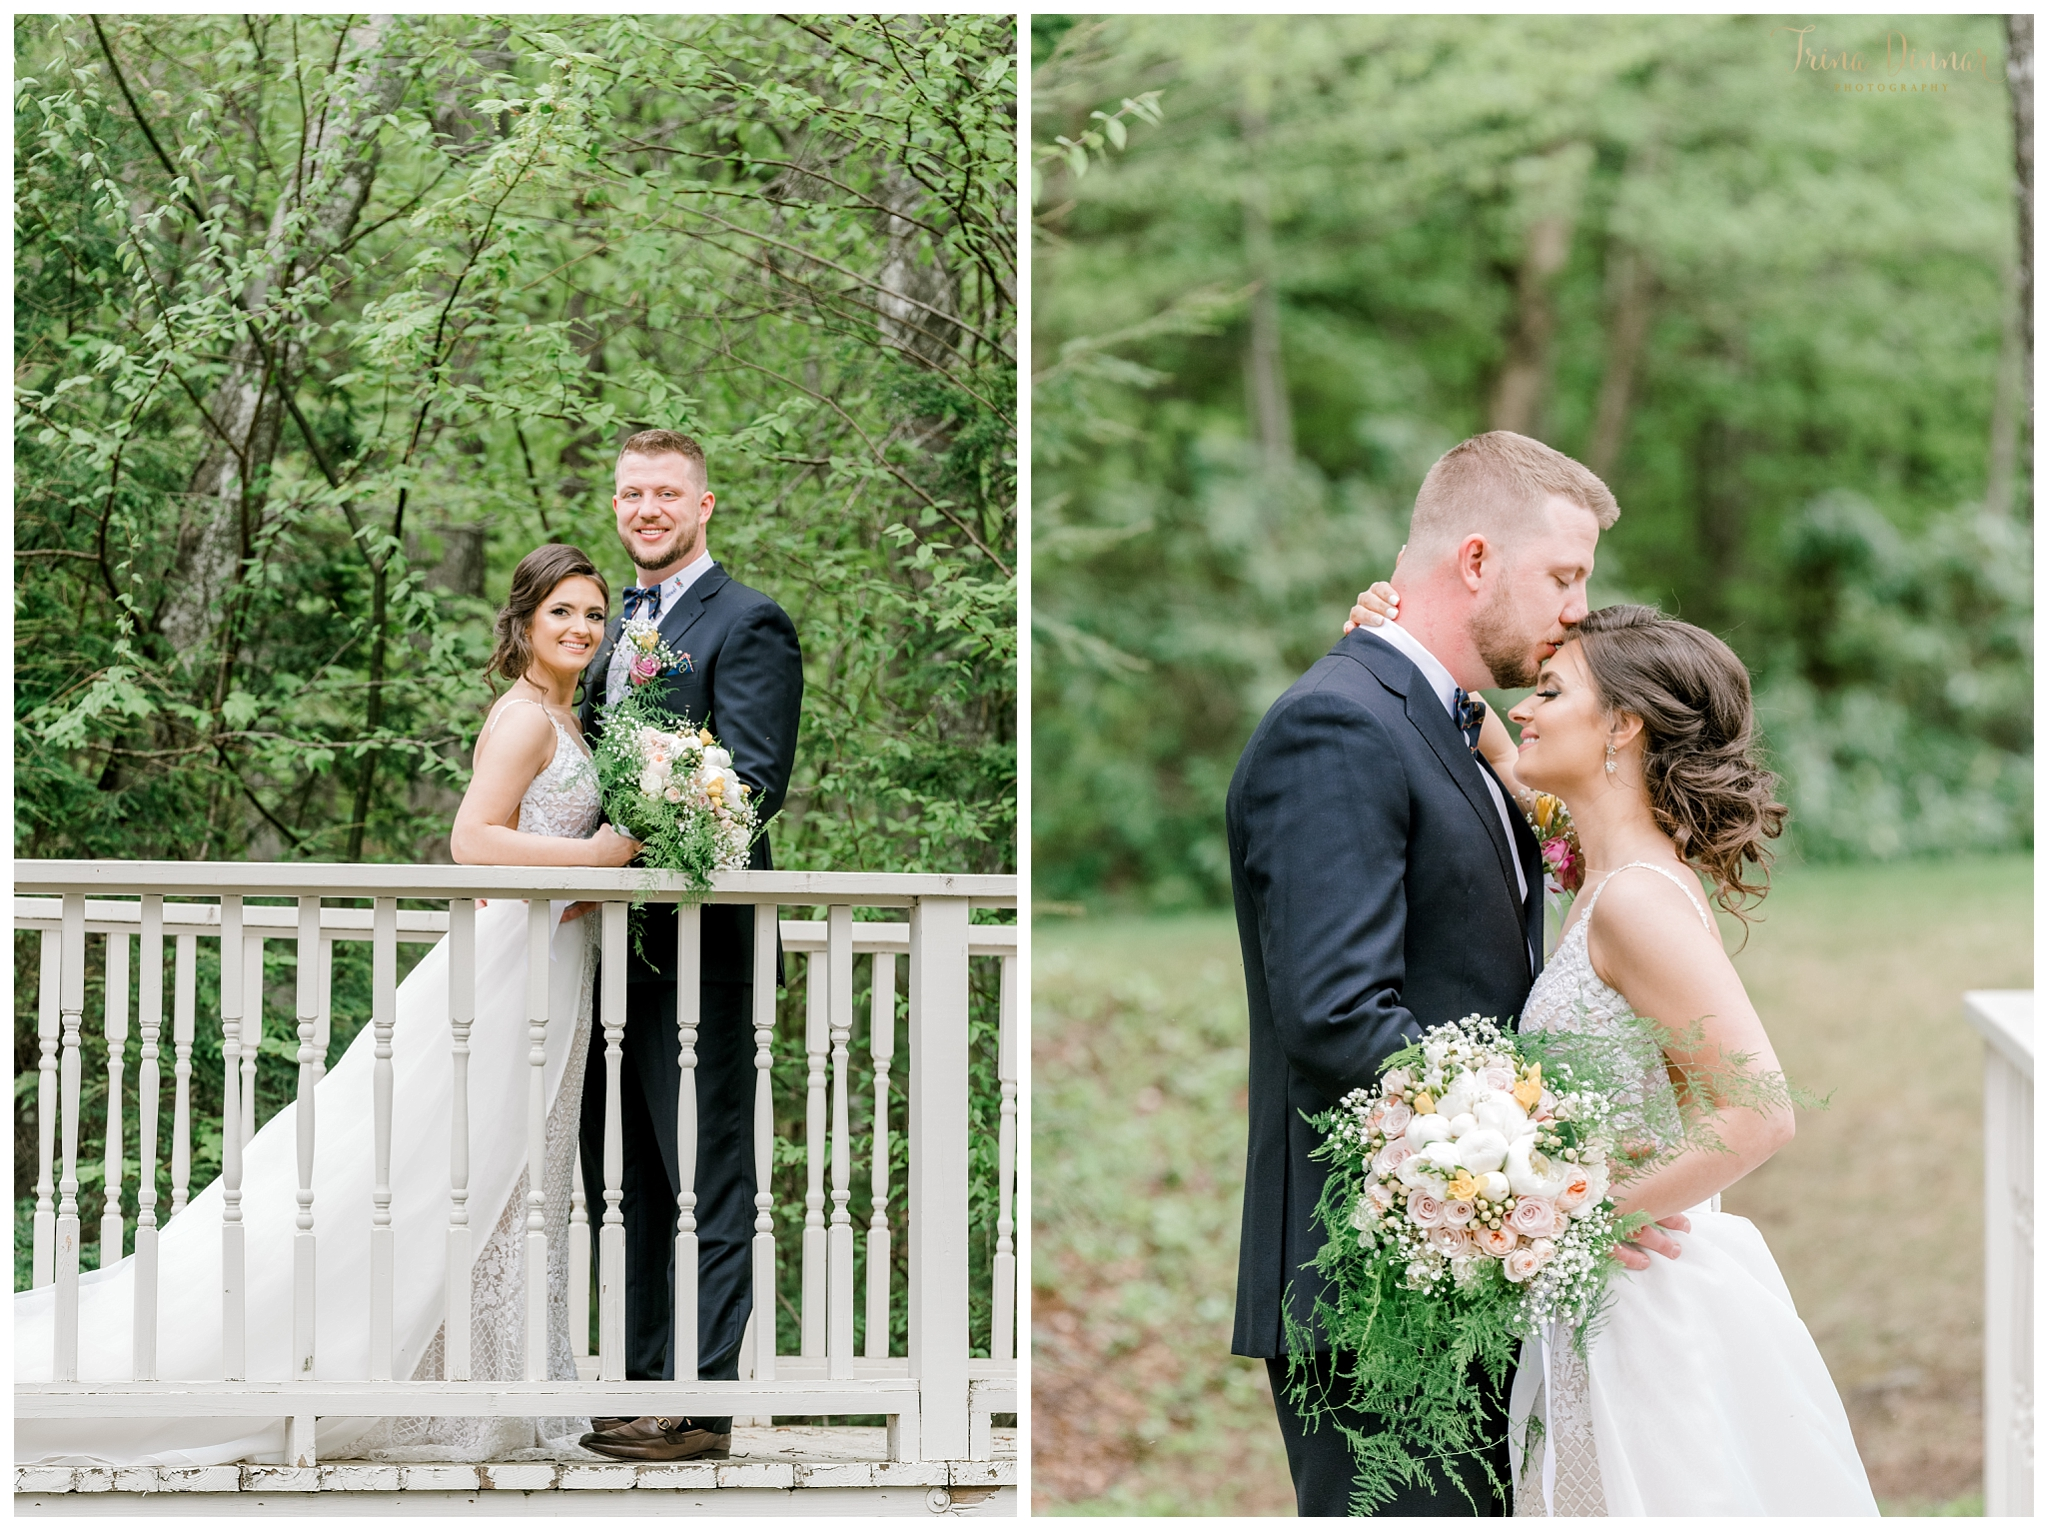 Sunday River Newry Maine Wedding Portrait Photography of Bride and Groom